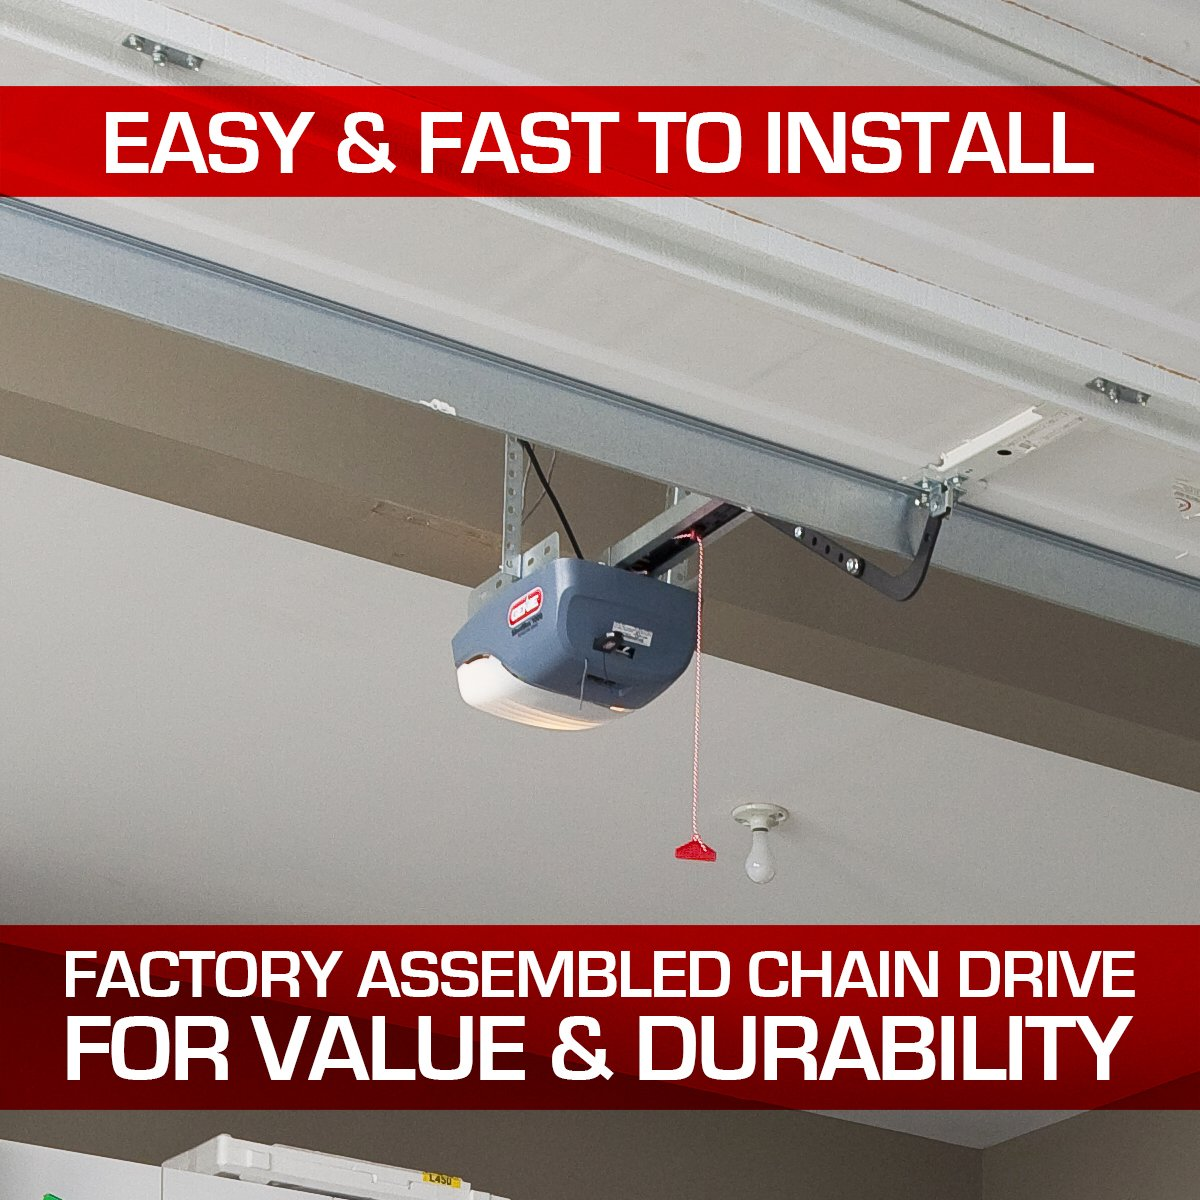 The ChainMax 1000 is an ideal option for residential garage doors that comes with many safety and security features.